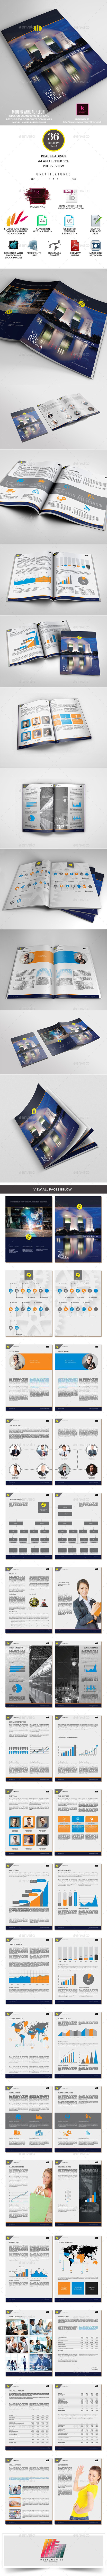 GraphicRiver Walla Annual Report Template for Modern Business 10783283